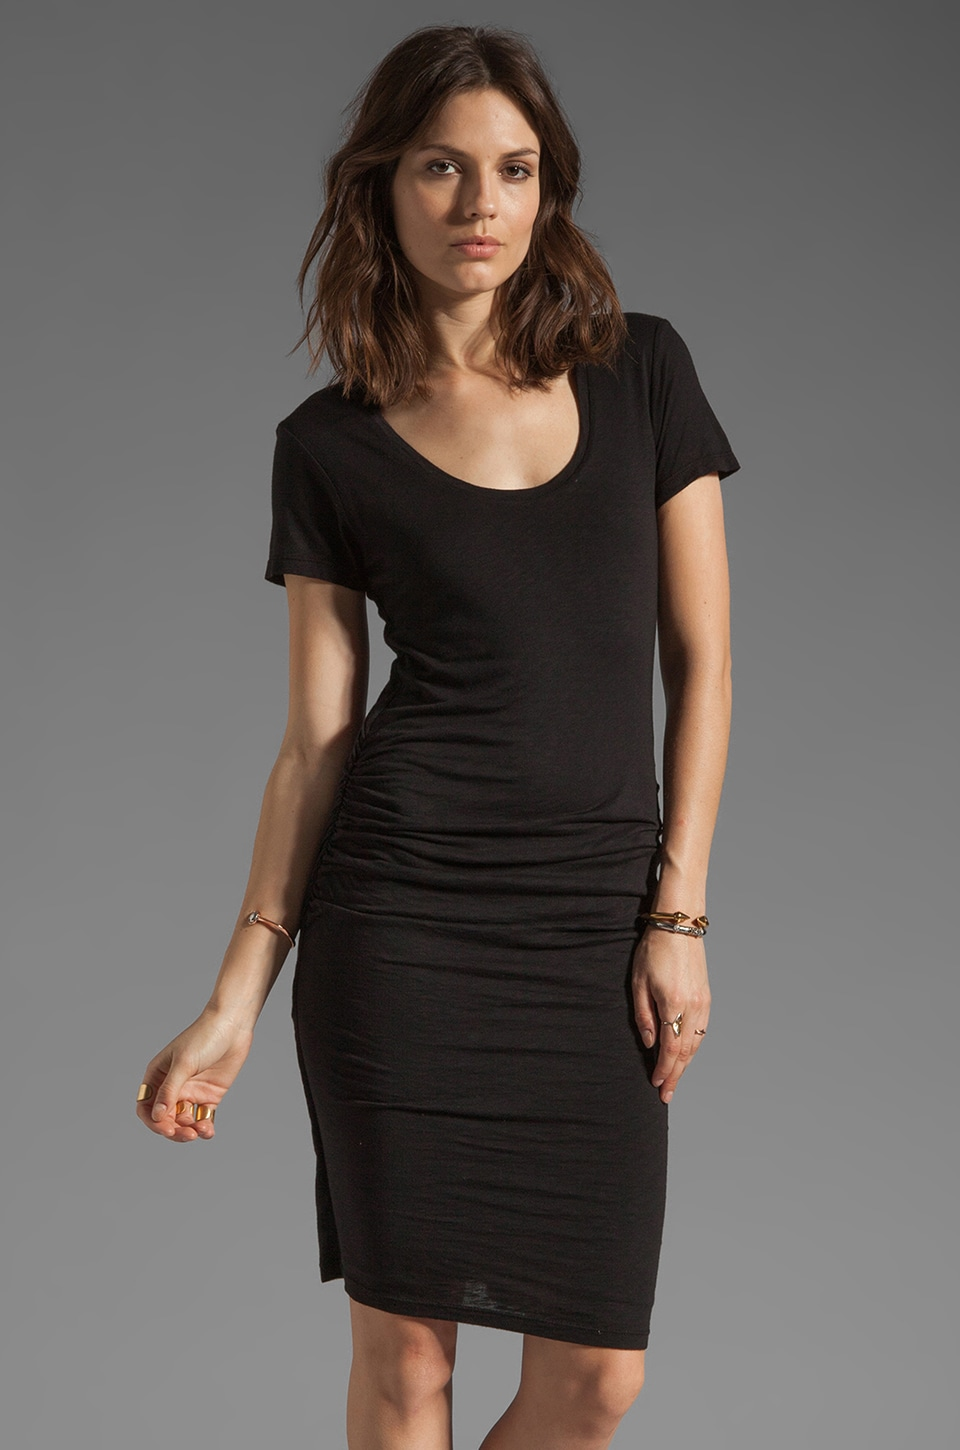 Velvet by Graham & Spencer Dina Luxe Slub Dress in Black